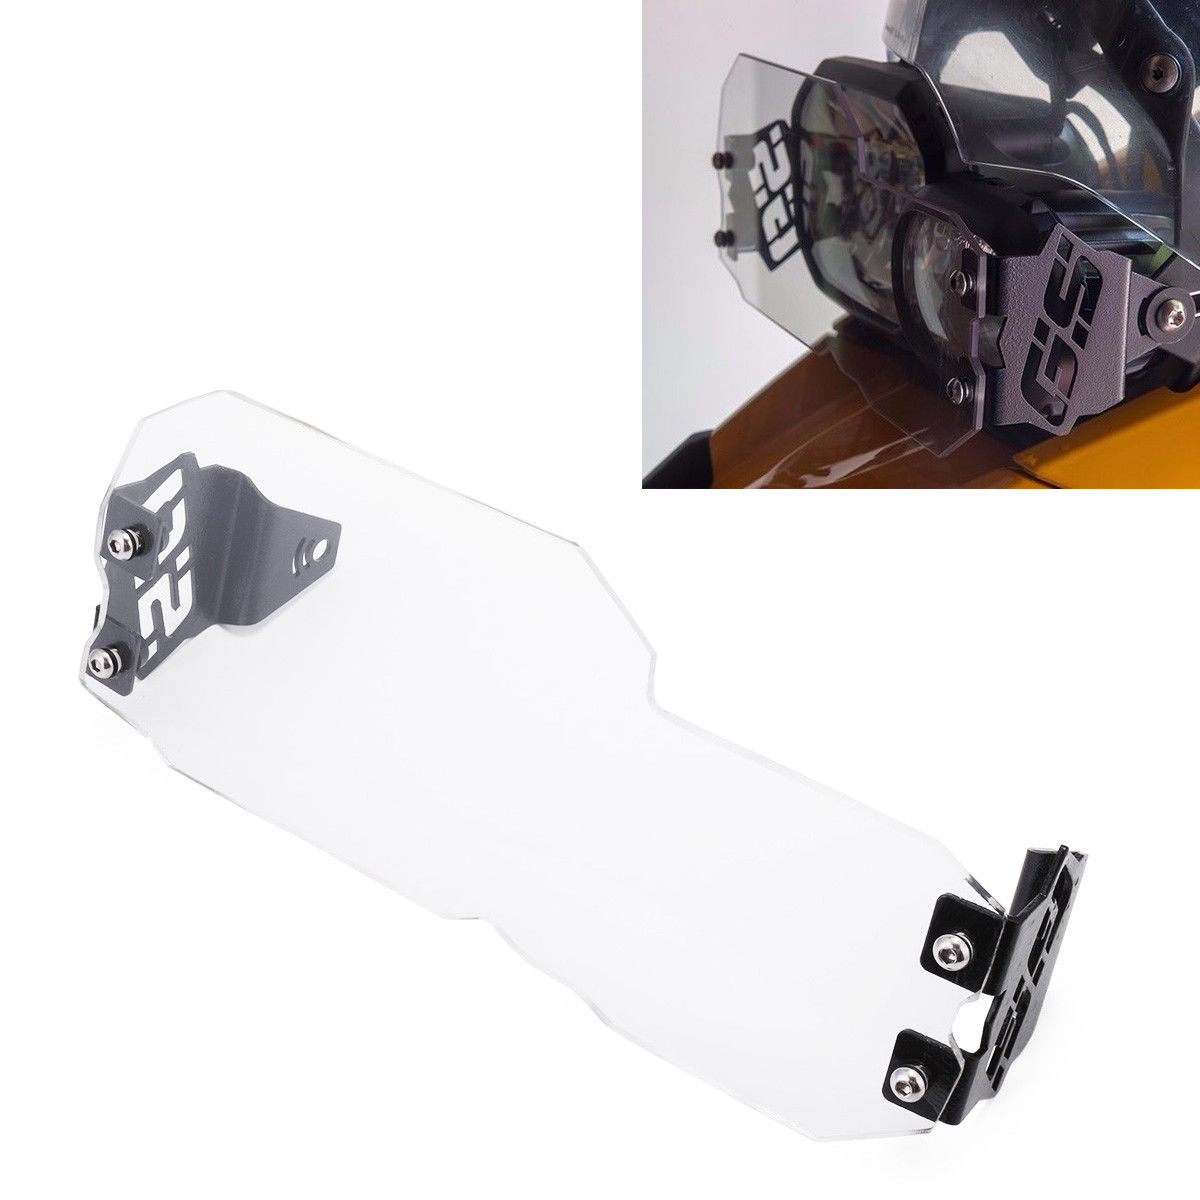 Plastic Clear Headlight Guard GS Style Set for BMW F650GS F700GS F800GS 2008-2016 F650GS 2008-2013 D15